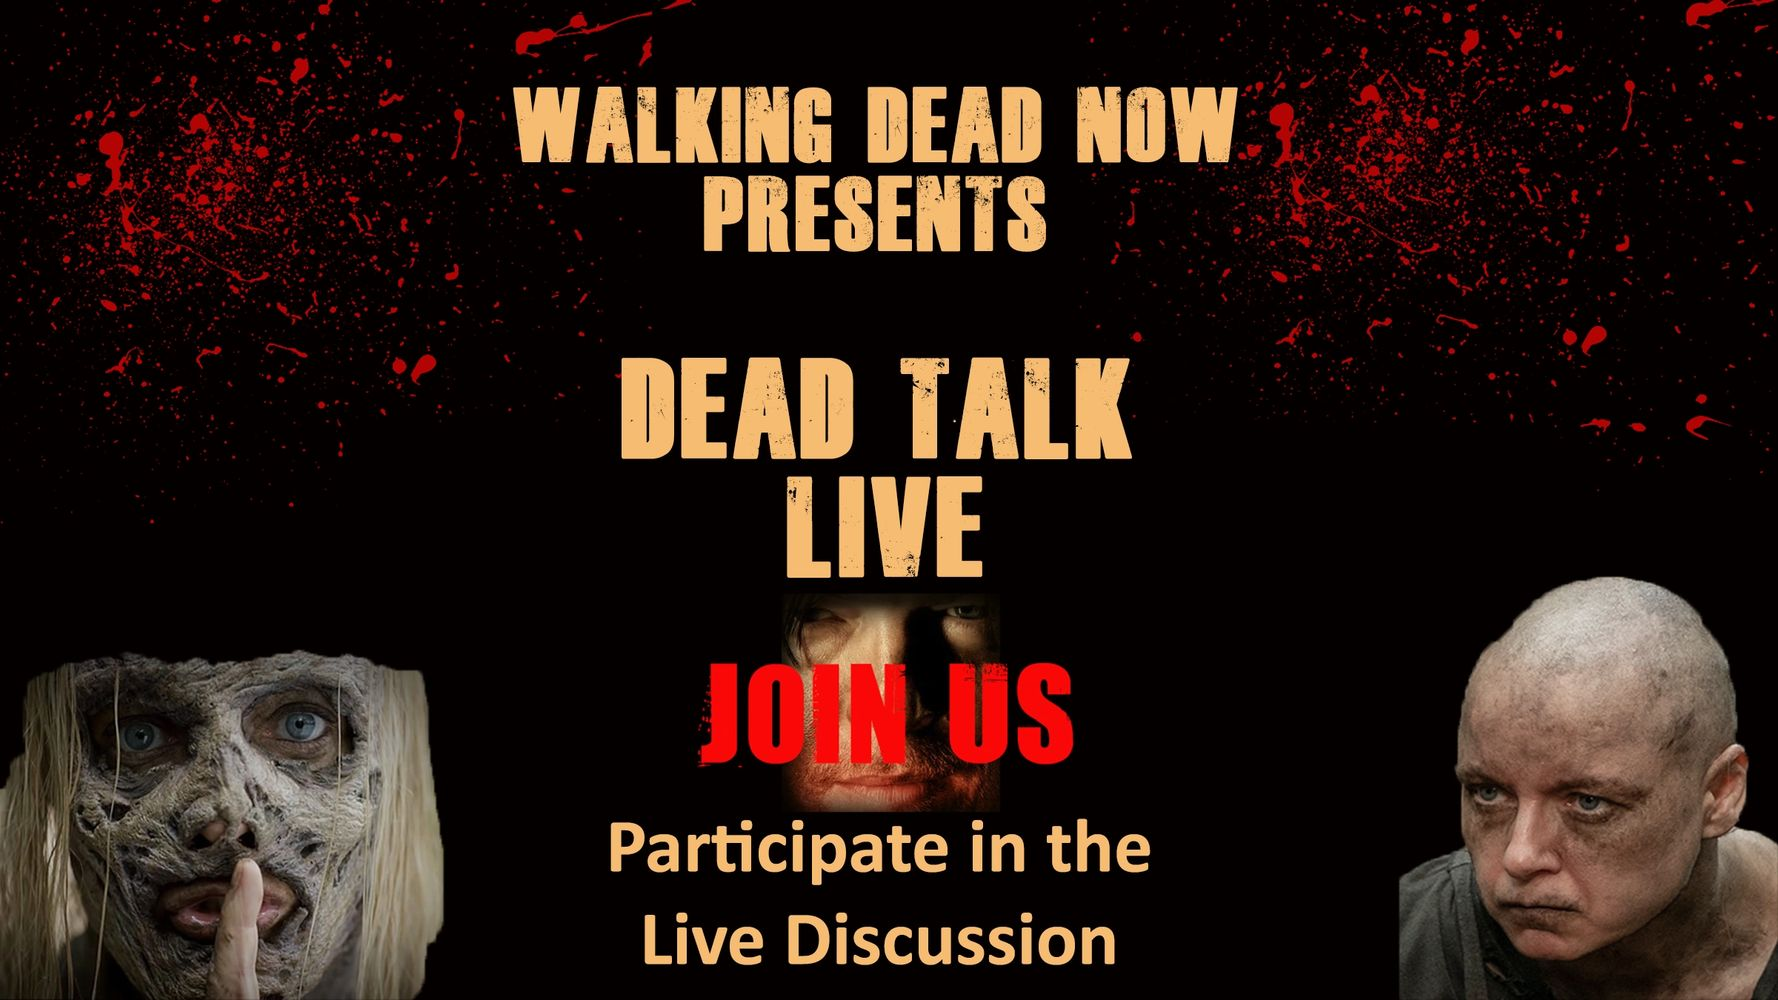 Dead Talk Live Stream Broadcast - Brought to you by Walking Dead Now